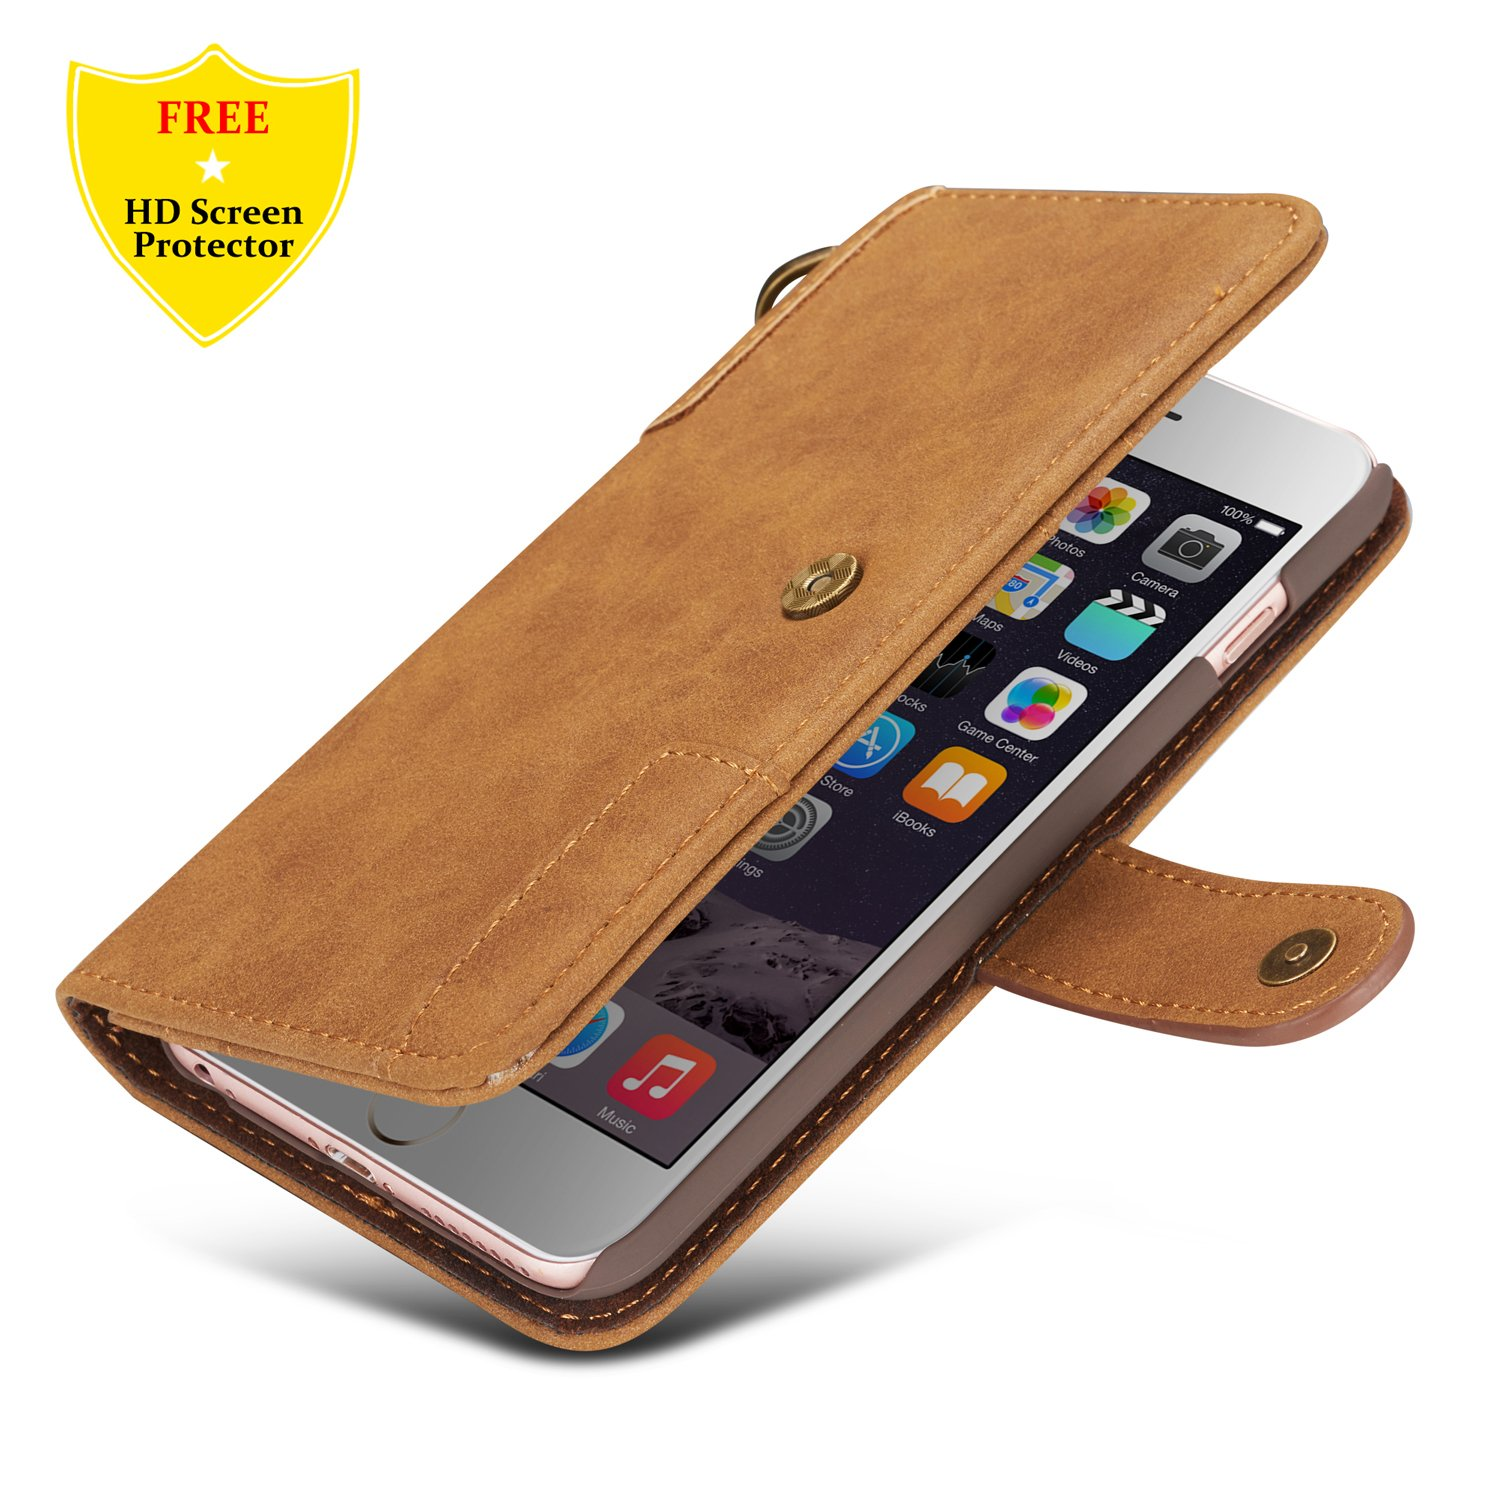 iPhone 8 Case,iPhone 7 Case + Free HD Screen Protector,idatog® High Quality PU Leather Wallet Flip Folio Book Case Cover with Kickstand Feature Card Slots and Magnetic Closure For Apple iPhone 8/iPhone 7 4.7 Inch (Dark Blue) id-YJ-FGGSPU-0329019